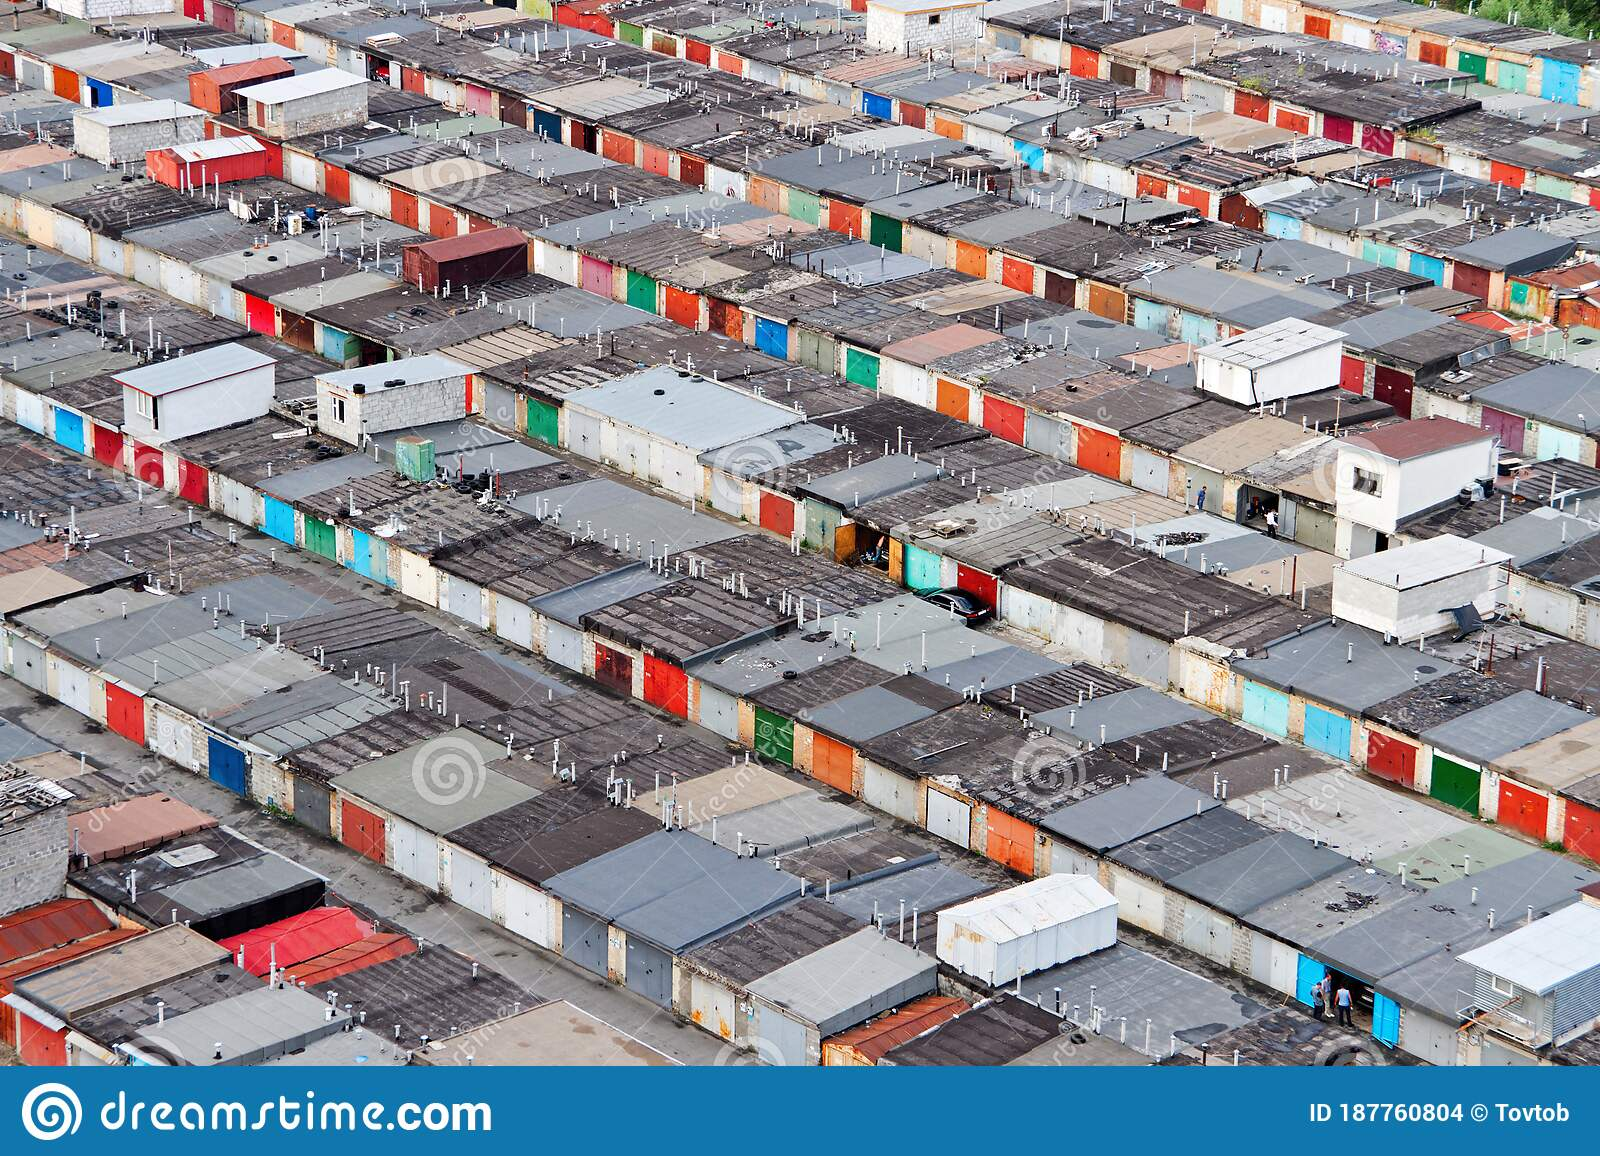 aerial-view-many-old-garages-cars-aerial-view-many-old-garages-cars-kiev-kyiv-ukraine-187760804.jpg